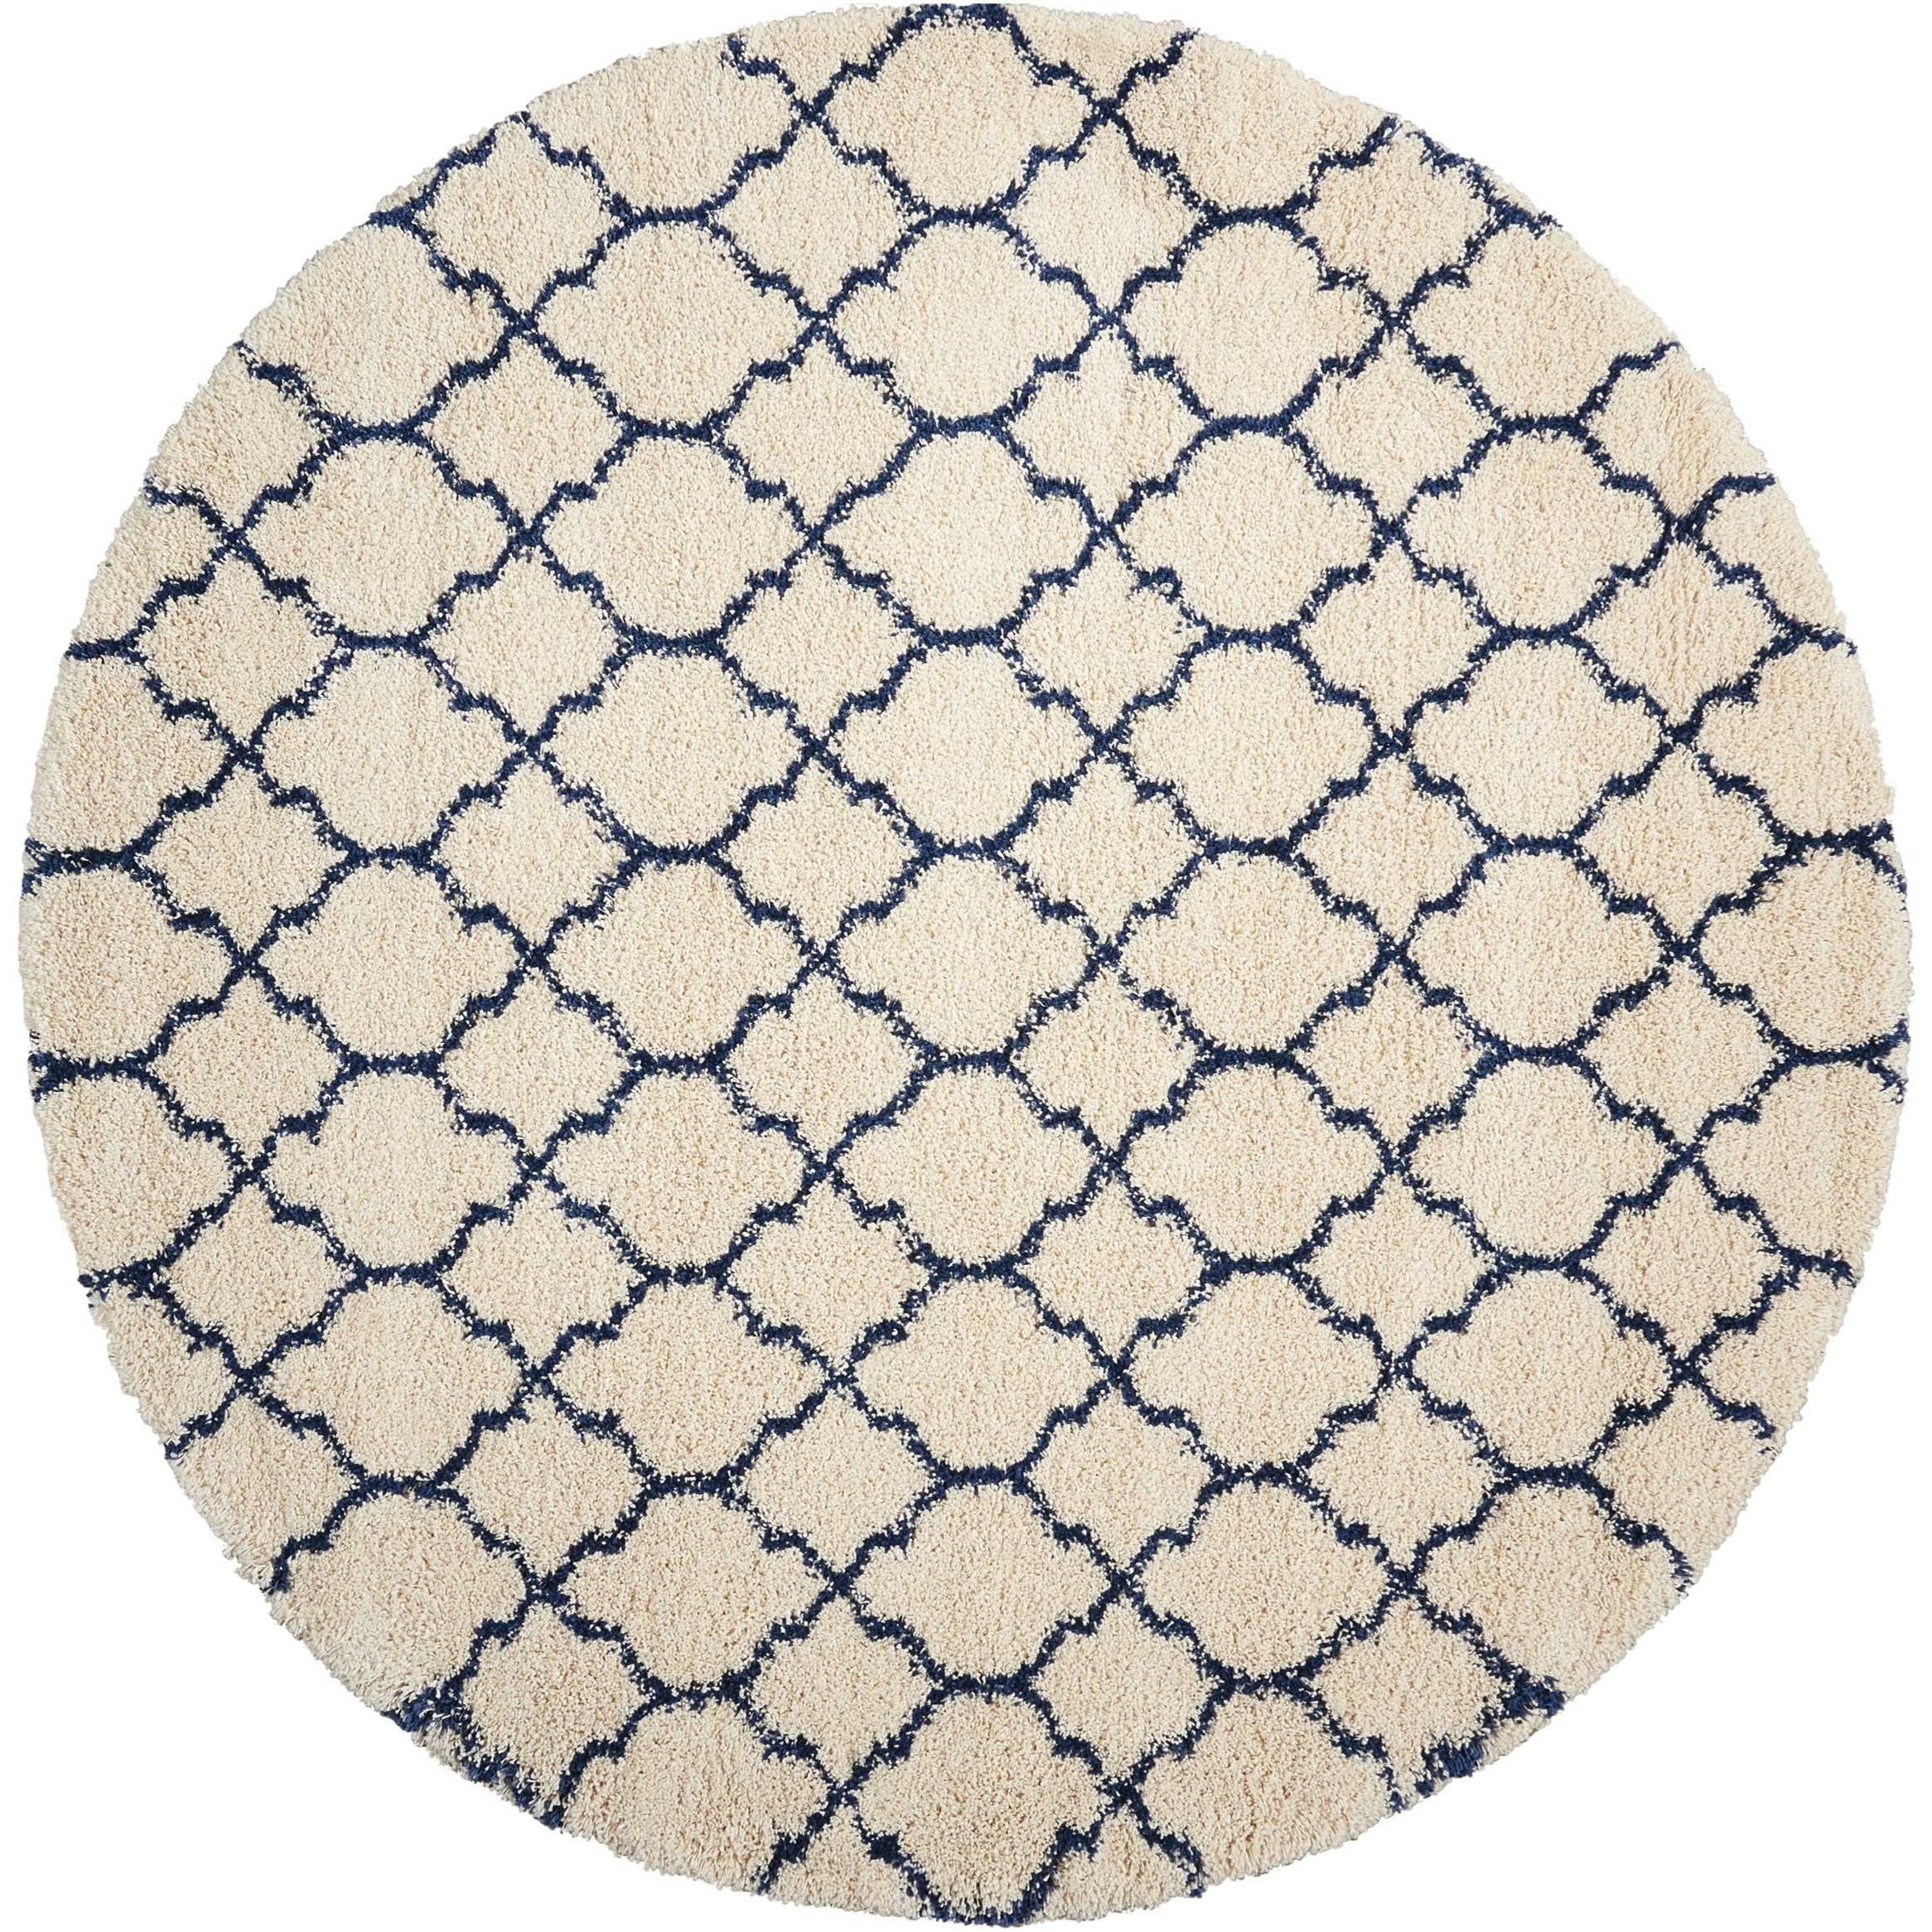 "Amore 7'10"" x 7'10"" Ivory/Blue Round Rug by Nourison at Home Collections Furniture"